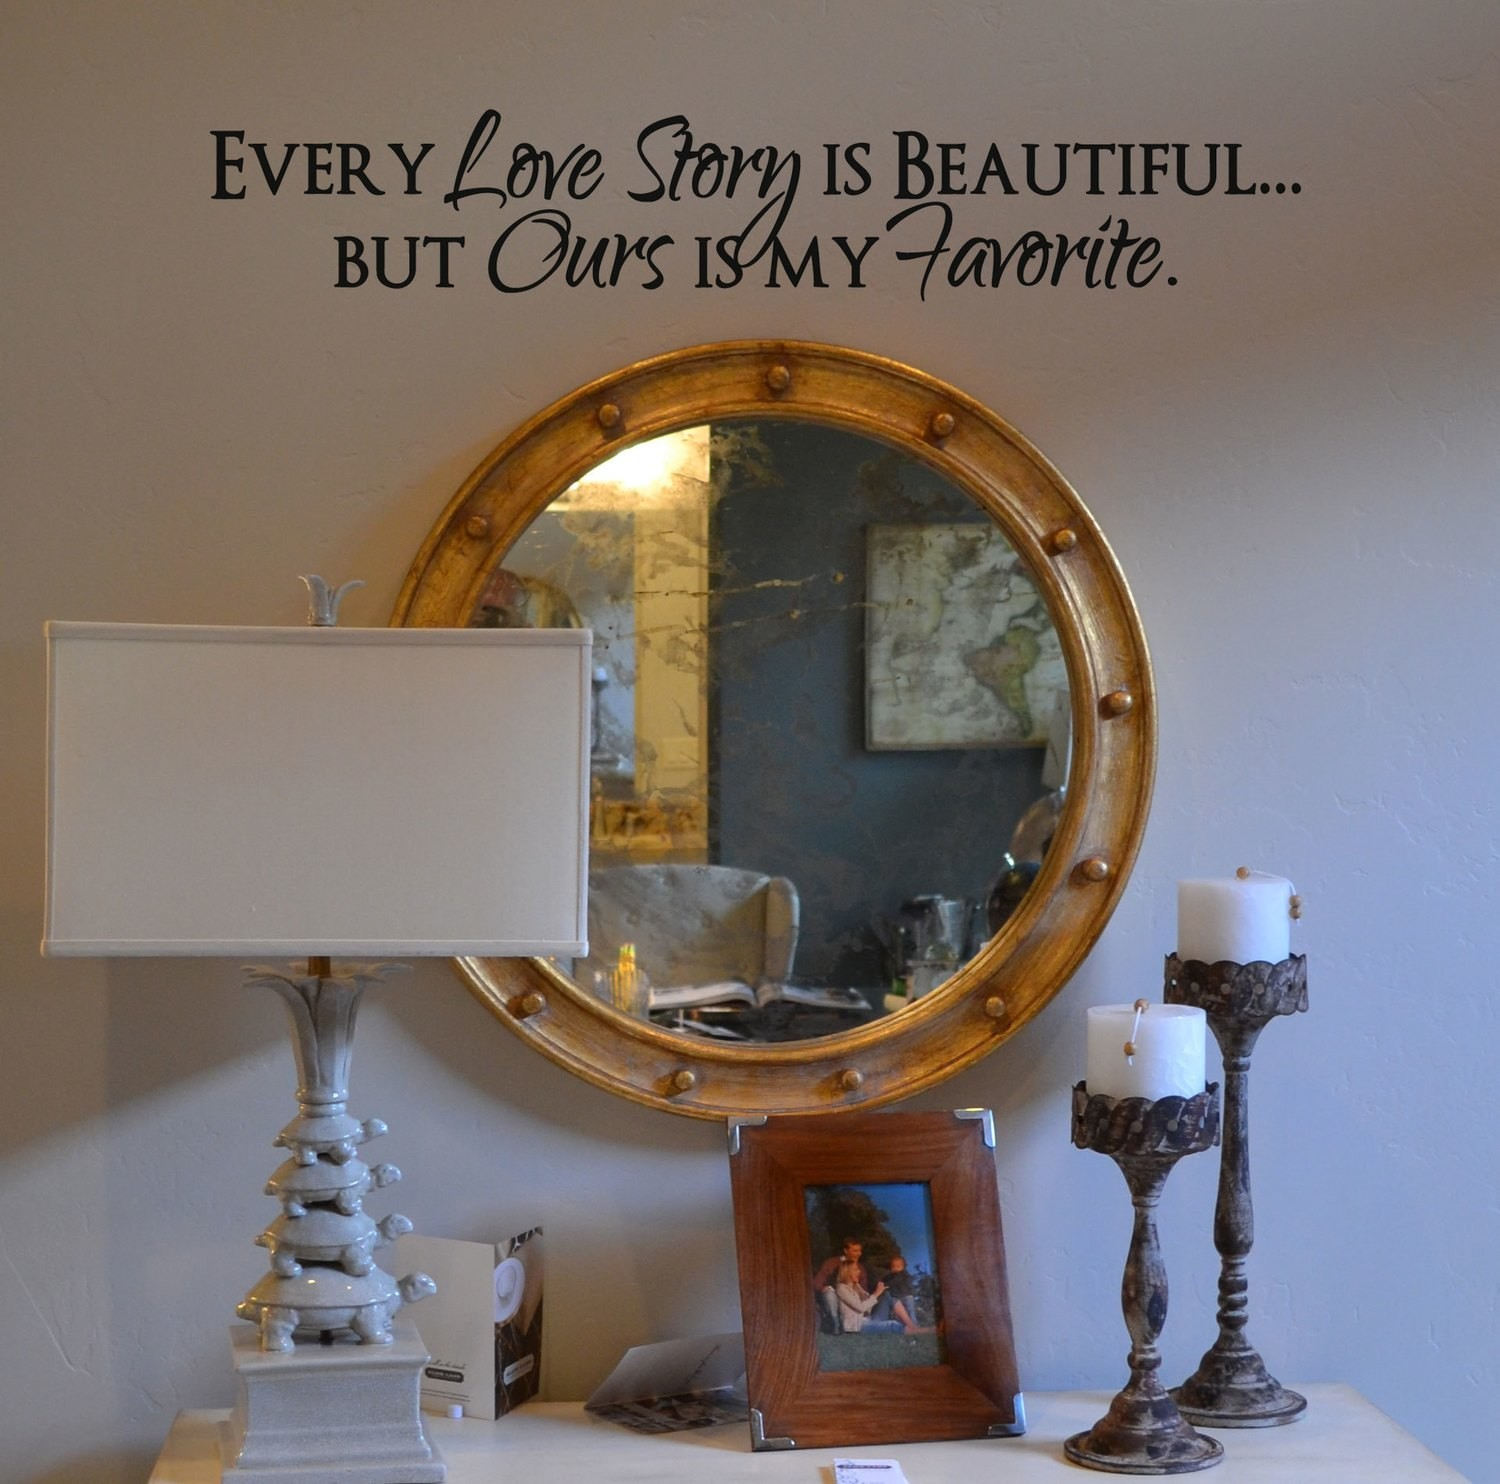 CLEARANCE Every love story is beautiful 30 x 5 black